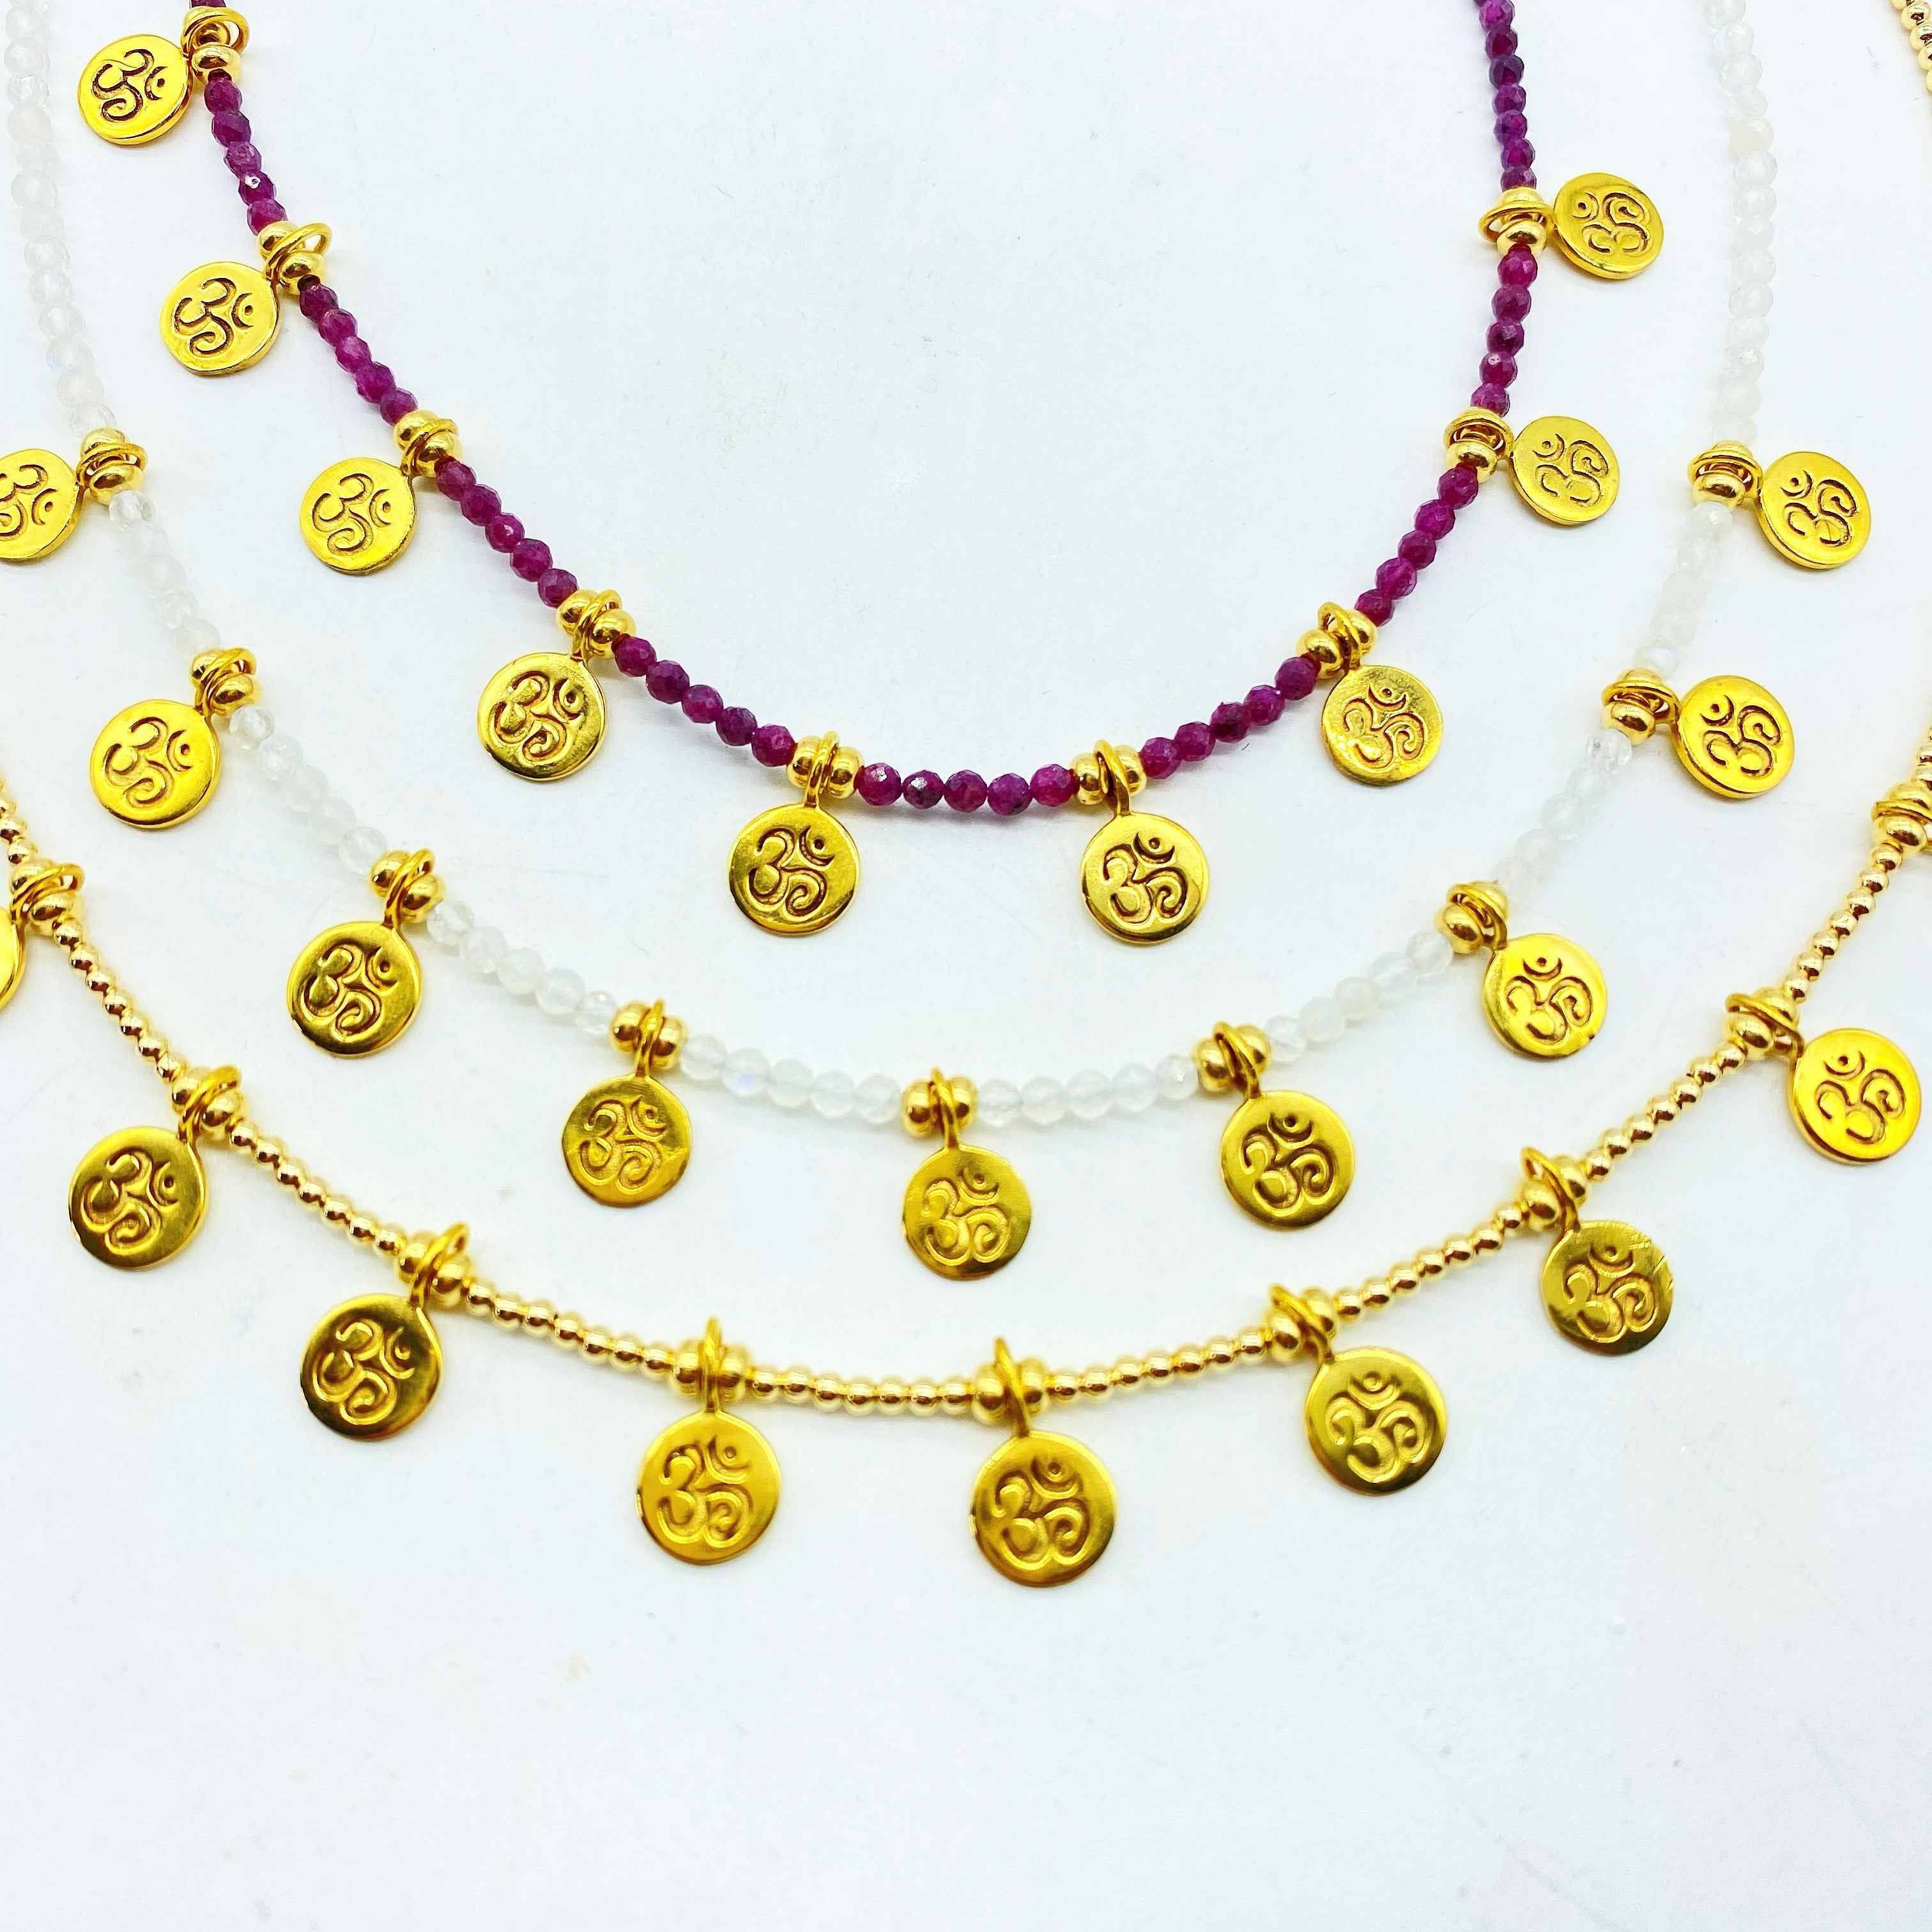 OM MANTRA NECKLACE